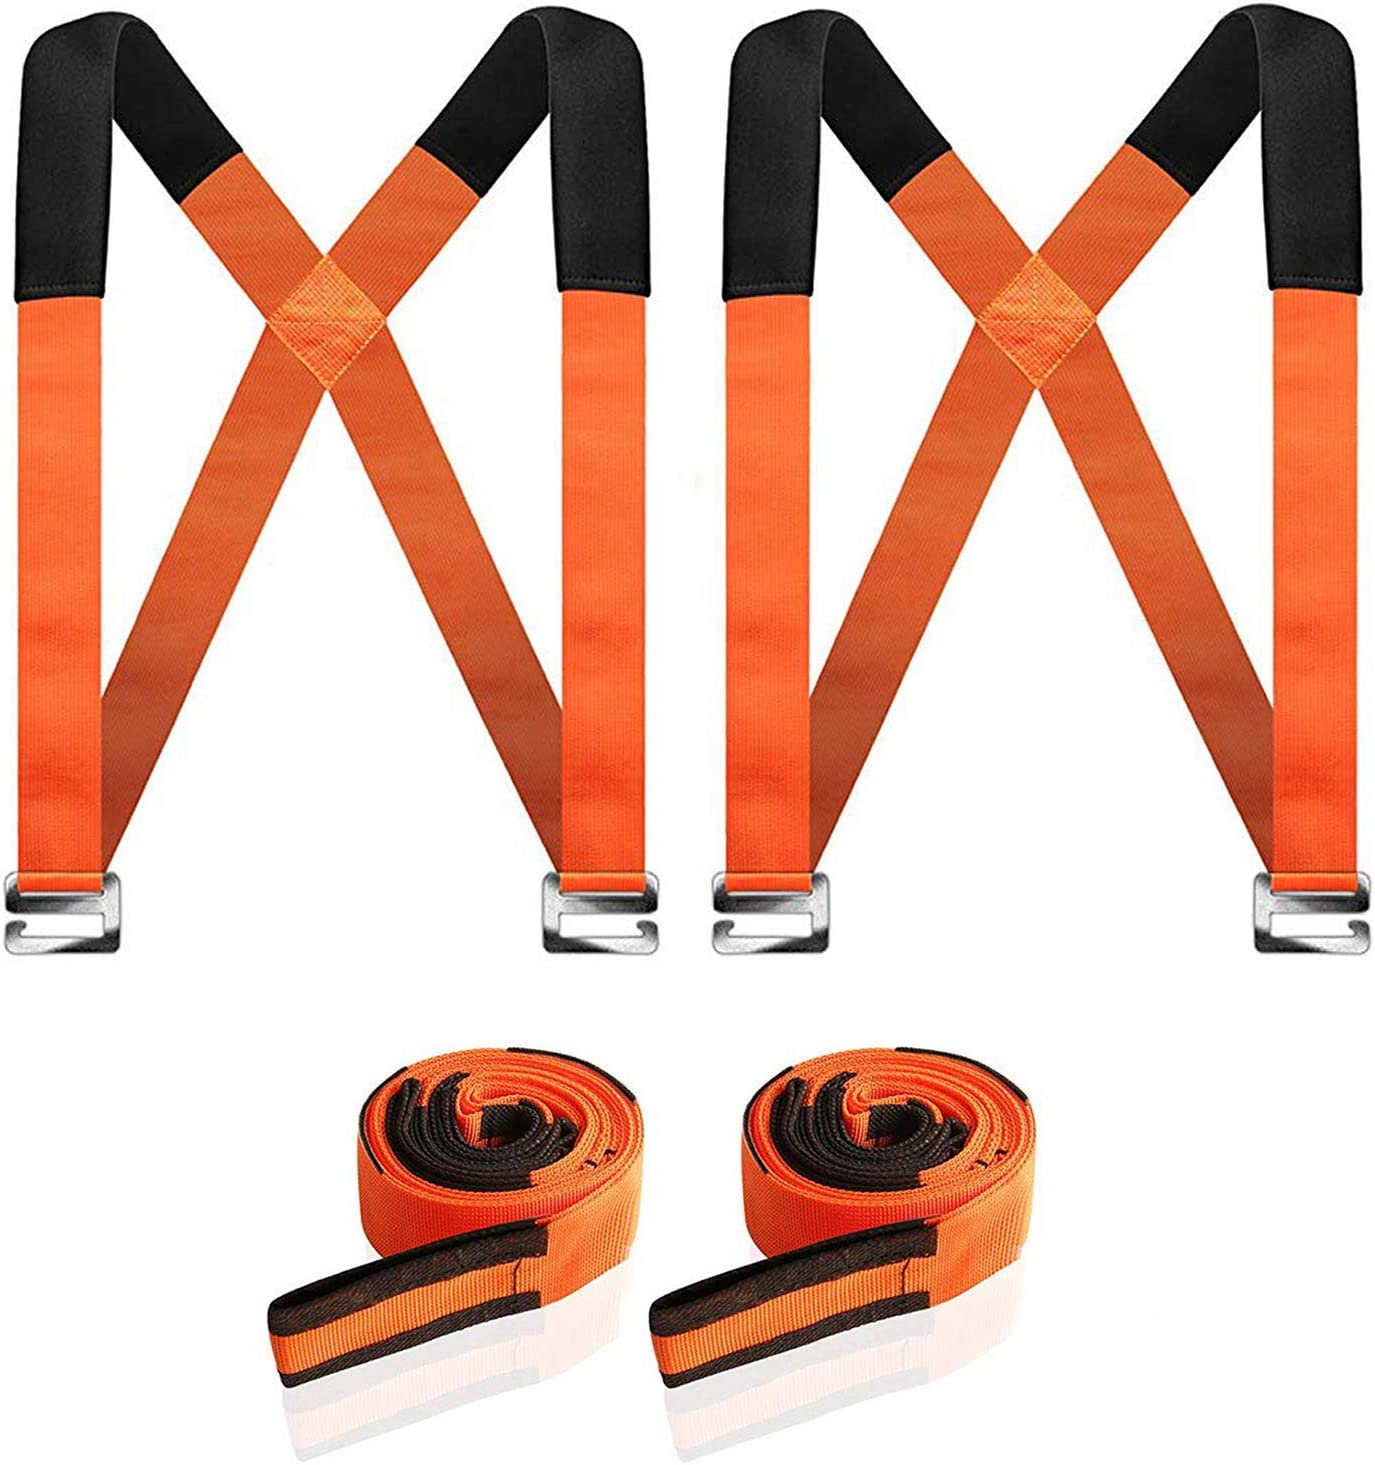 Moving Straps, YTTAO Moving and Lifting Straps, High Density Multifunctional Moving Belts, for Carrying Goods, Furniture, Appliances, etc (2 Pairs of Safety Gloves Included, New Package)